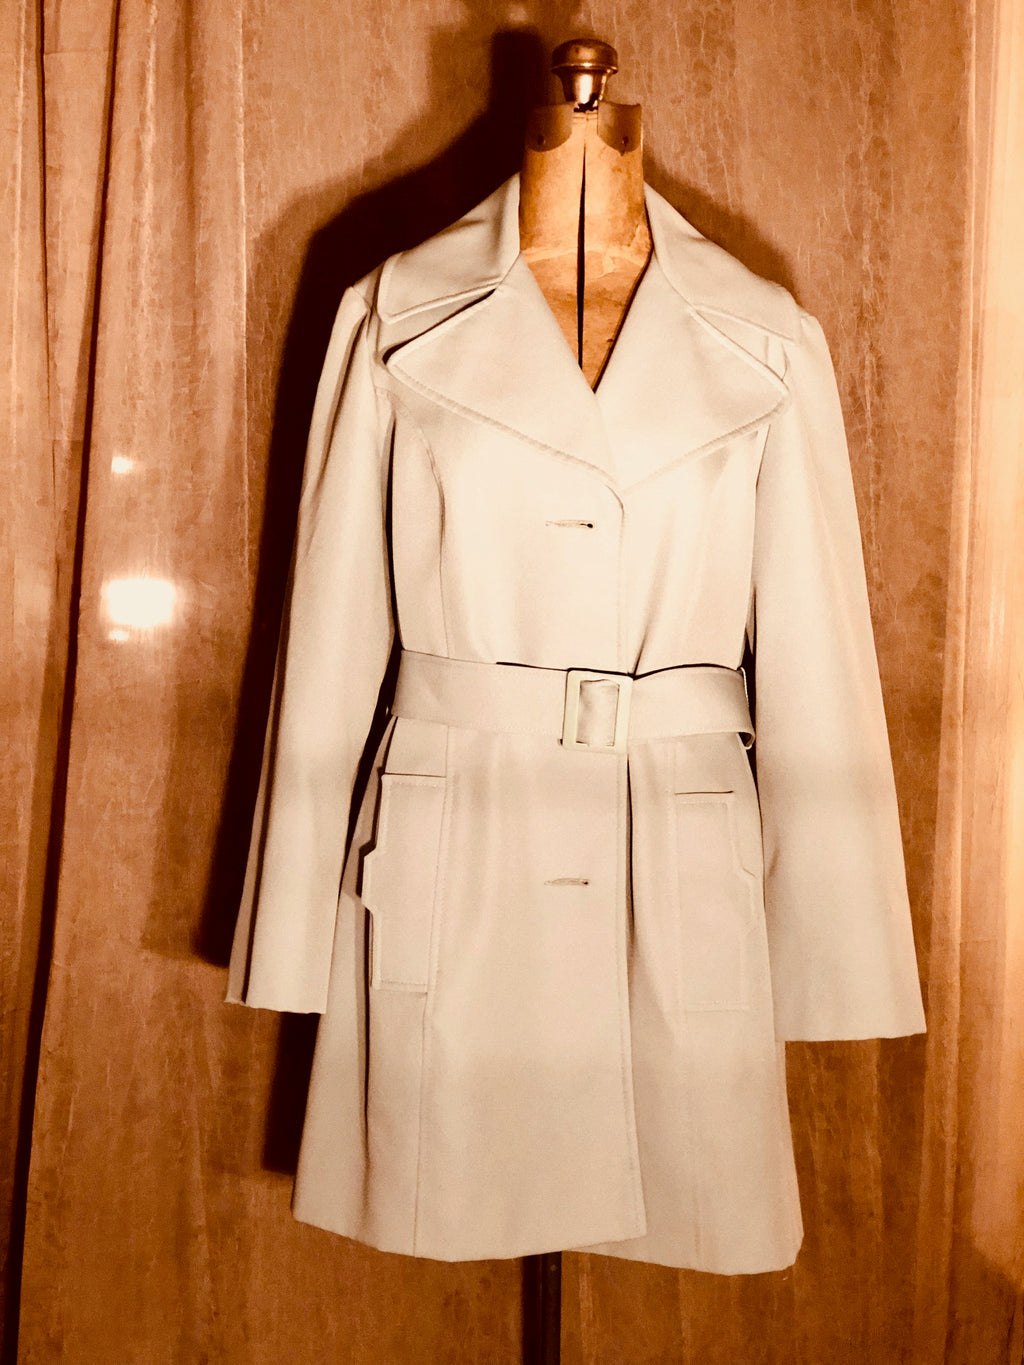 Beautiful True Vintage Circa 1960's Pale Green Jacket with belt!